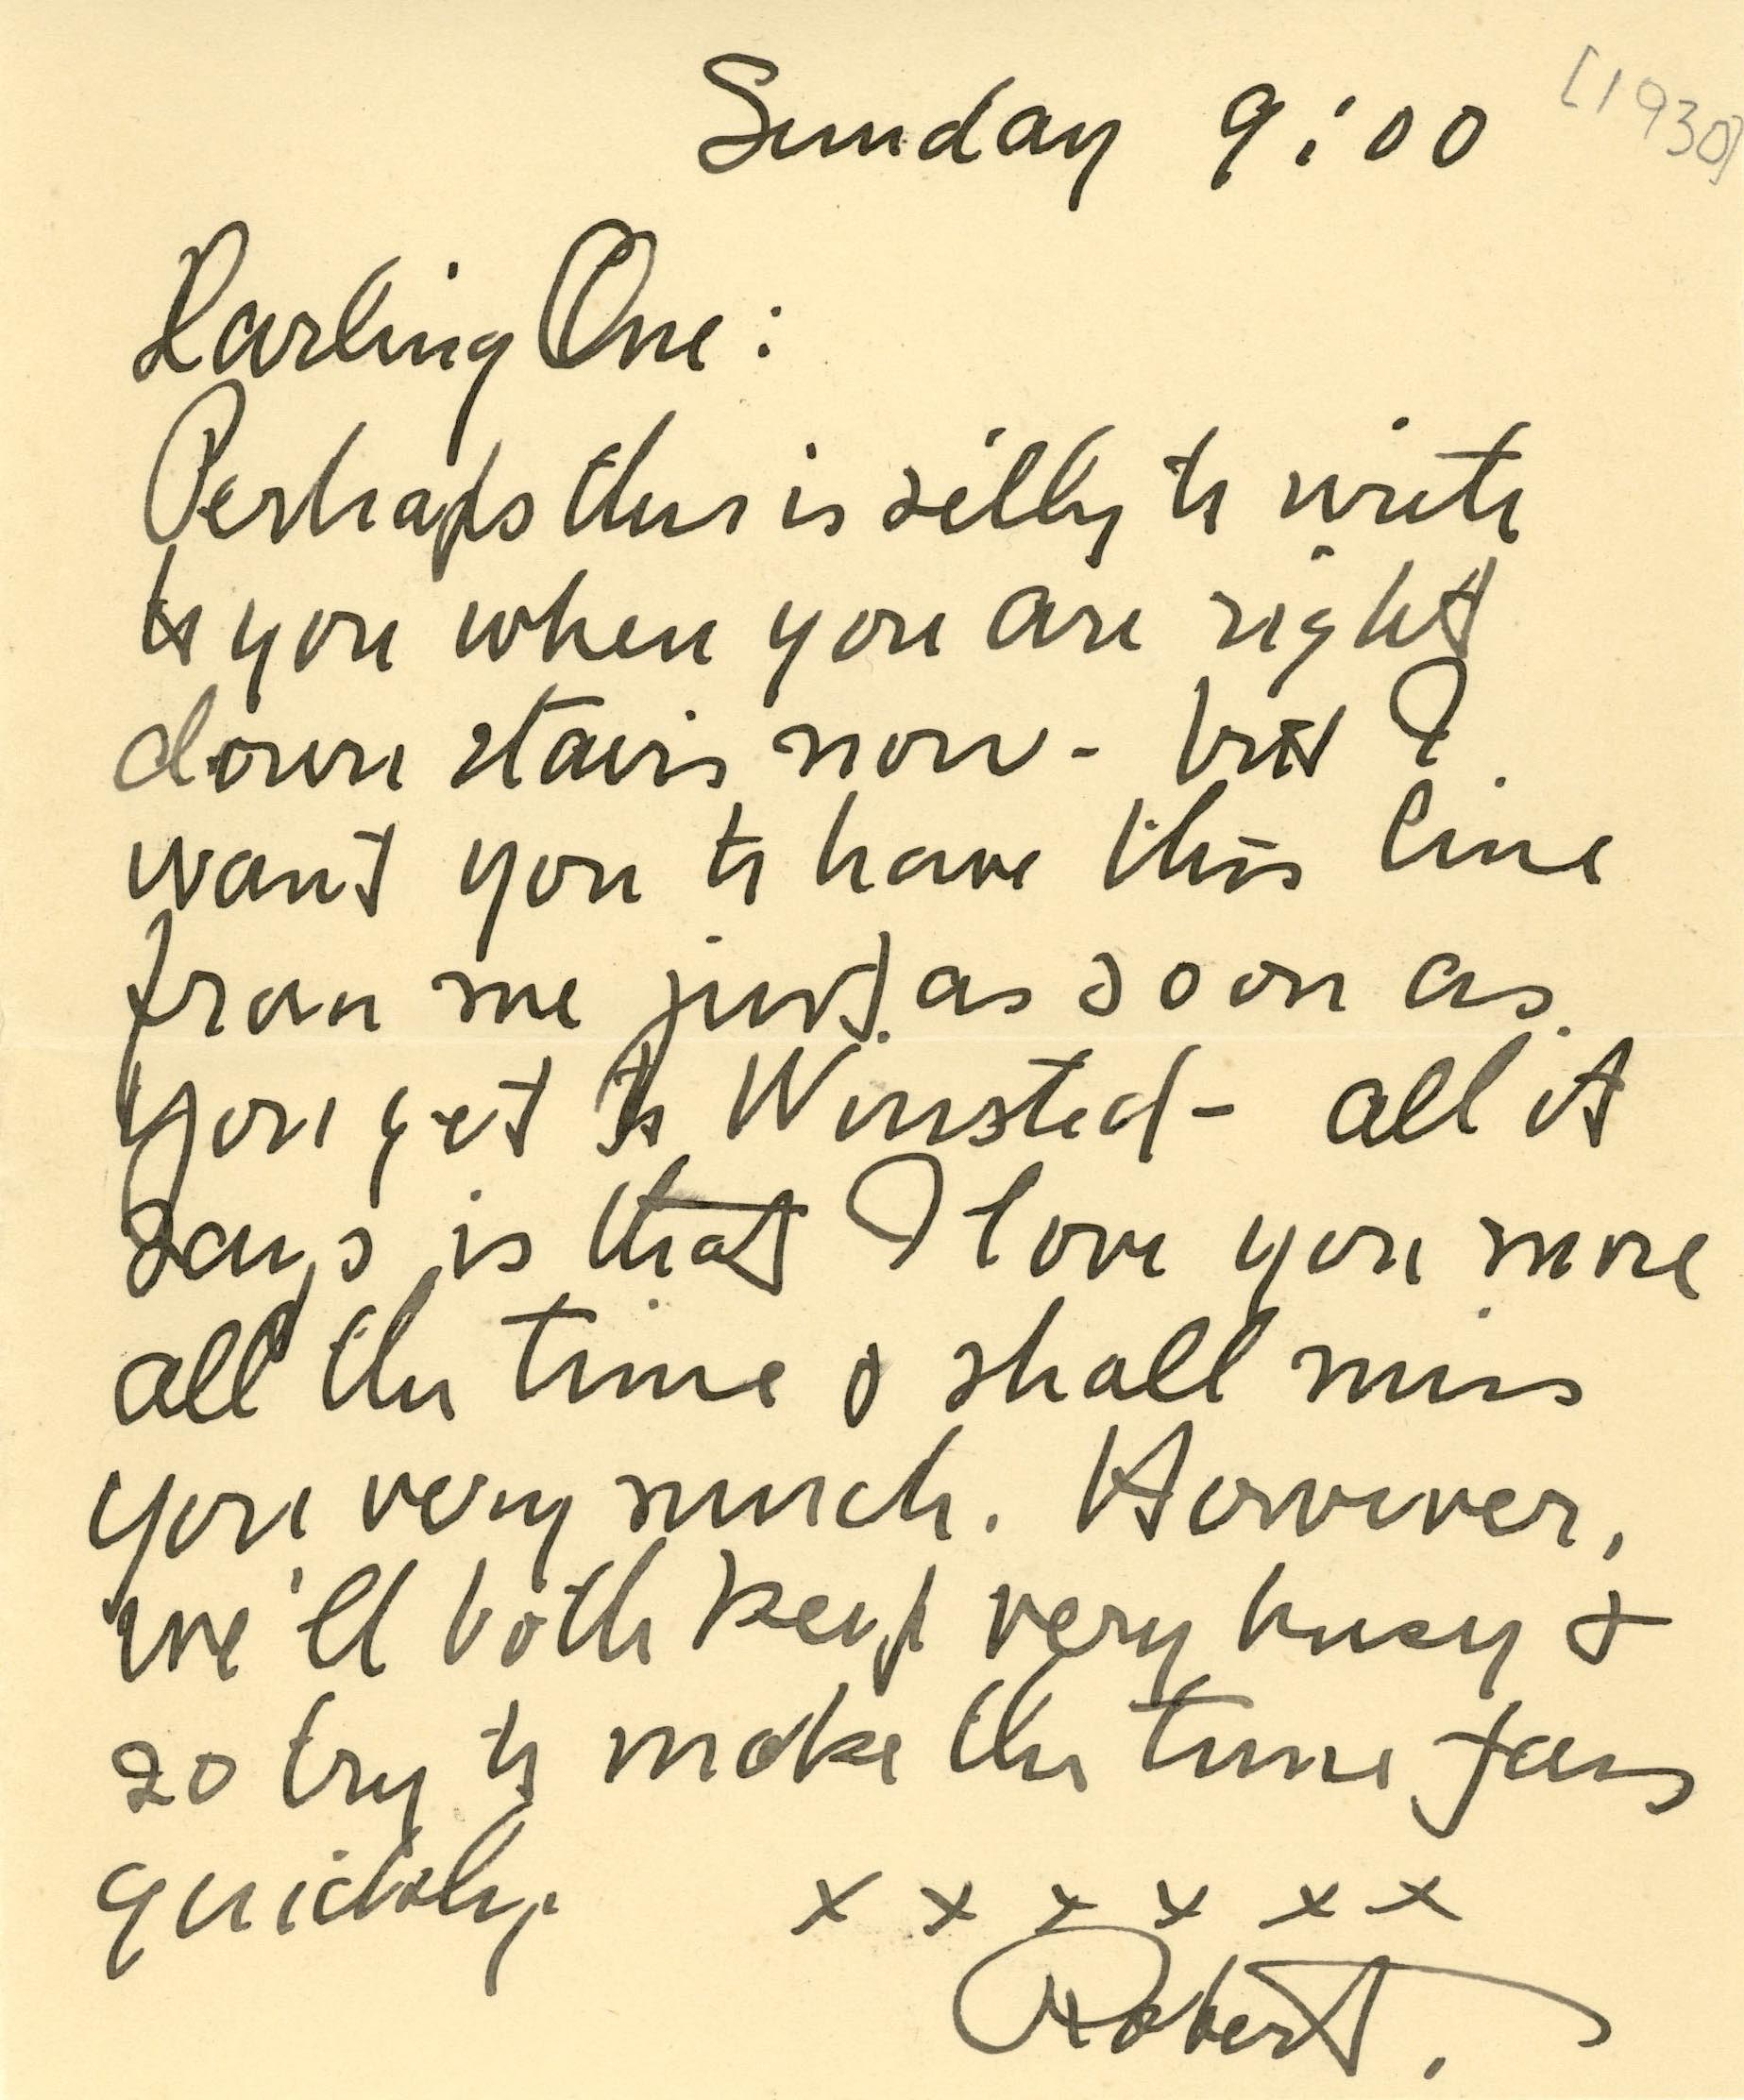 Robert Burke to wife Avis. IU Archives Collection C96.